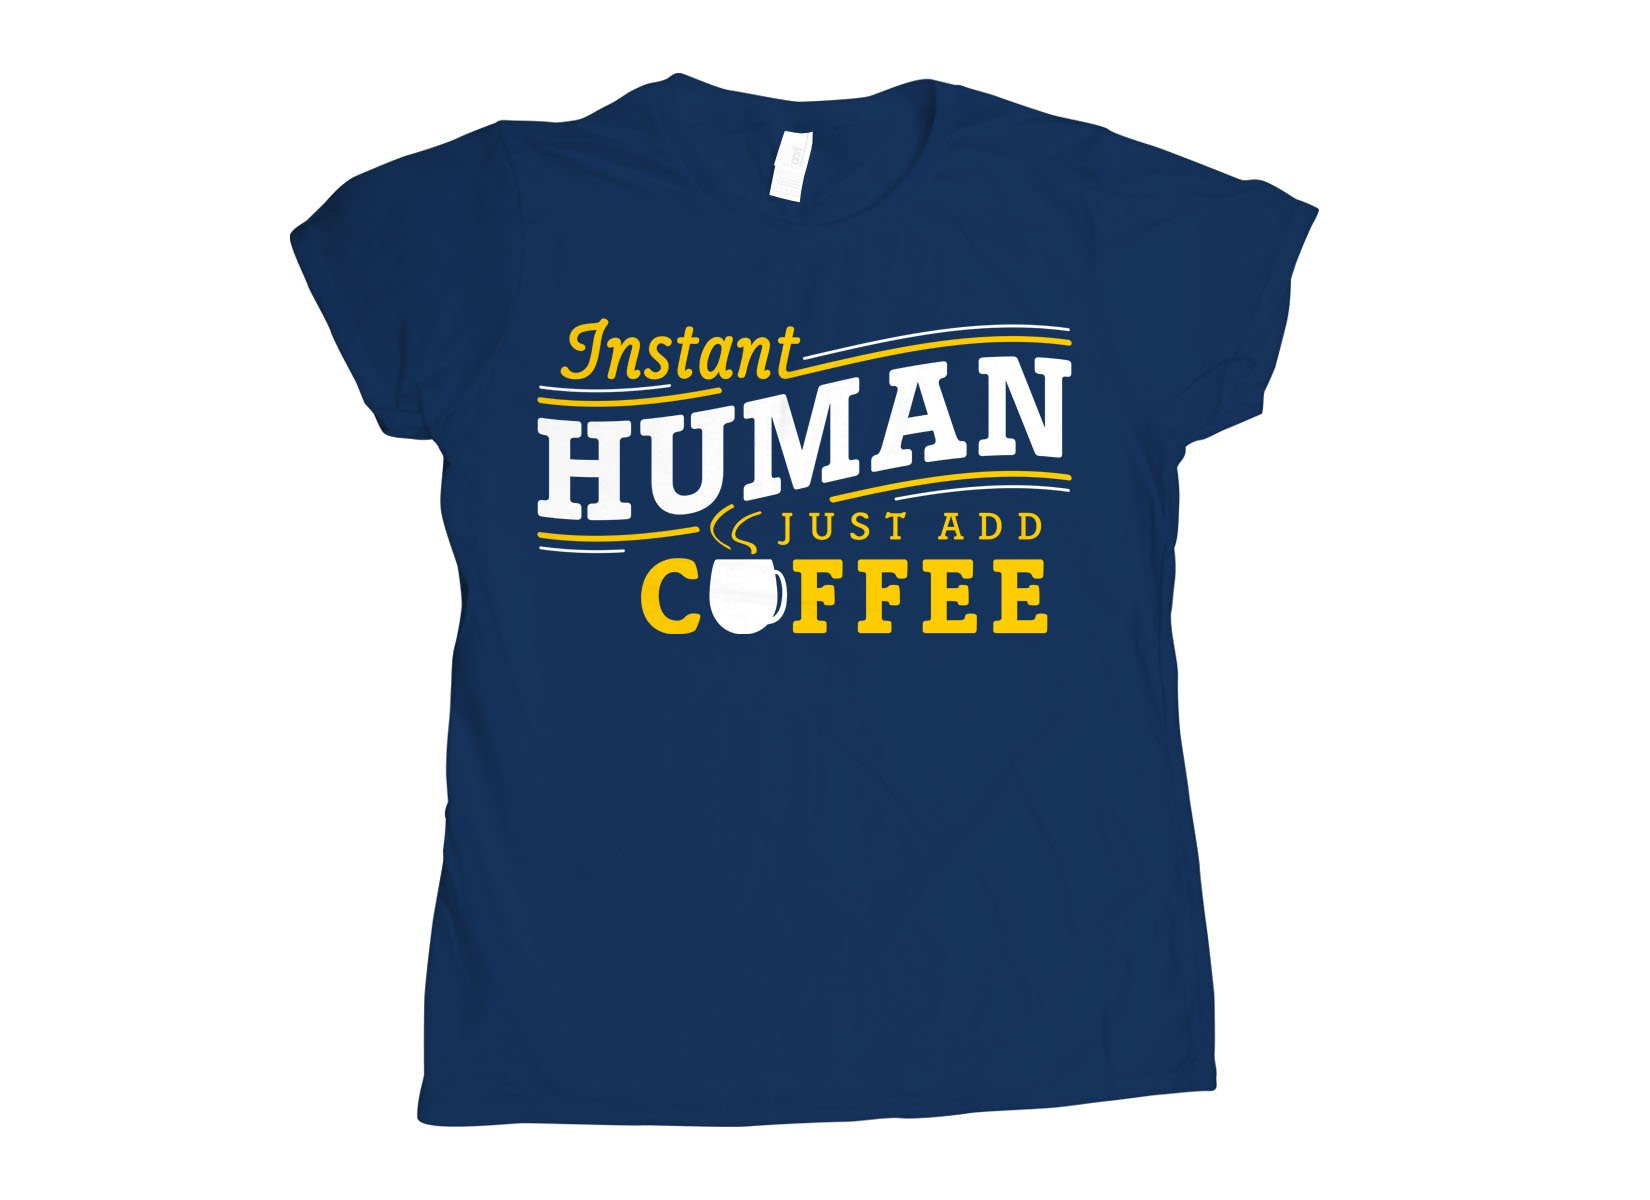 Instant Human Just Add Coffee on Womens T-Shirt